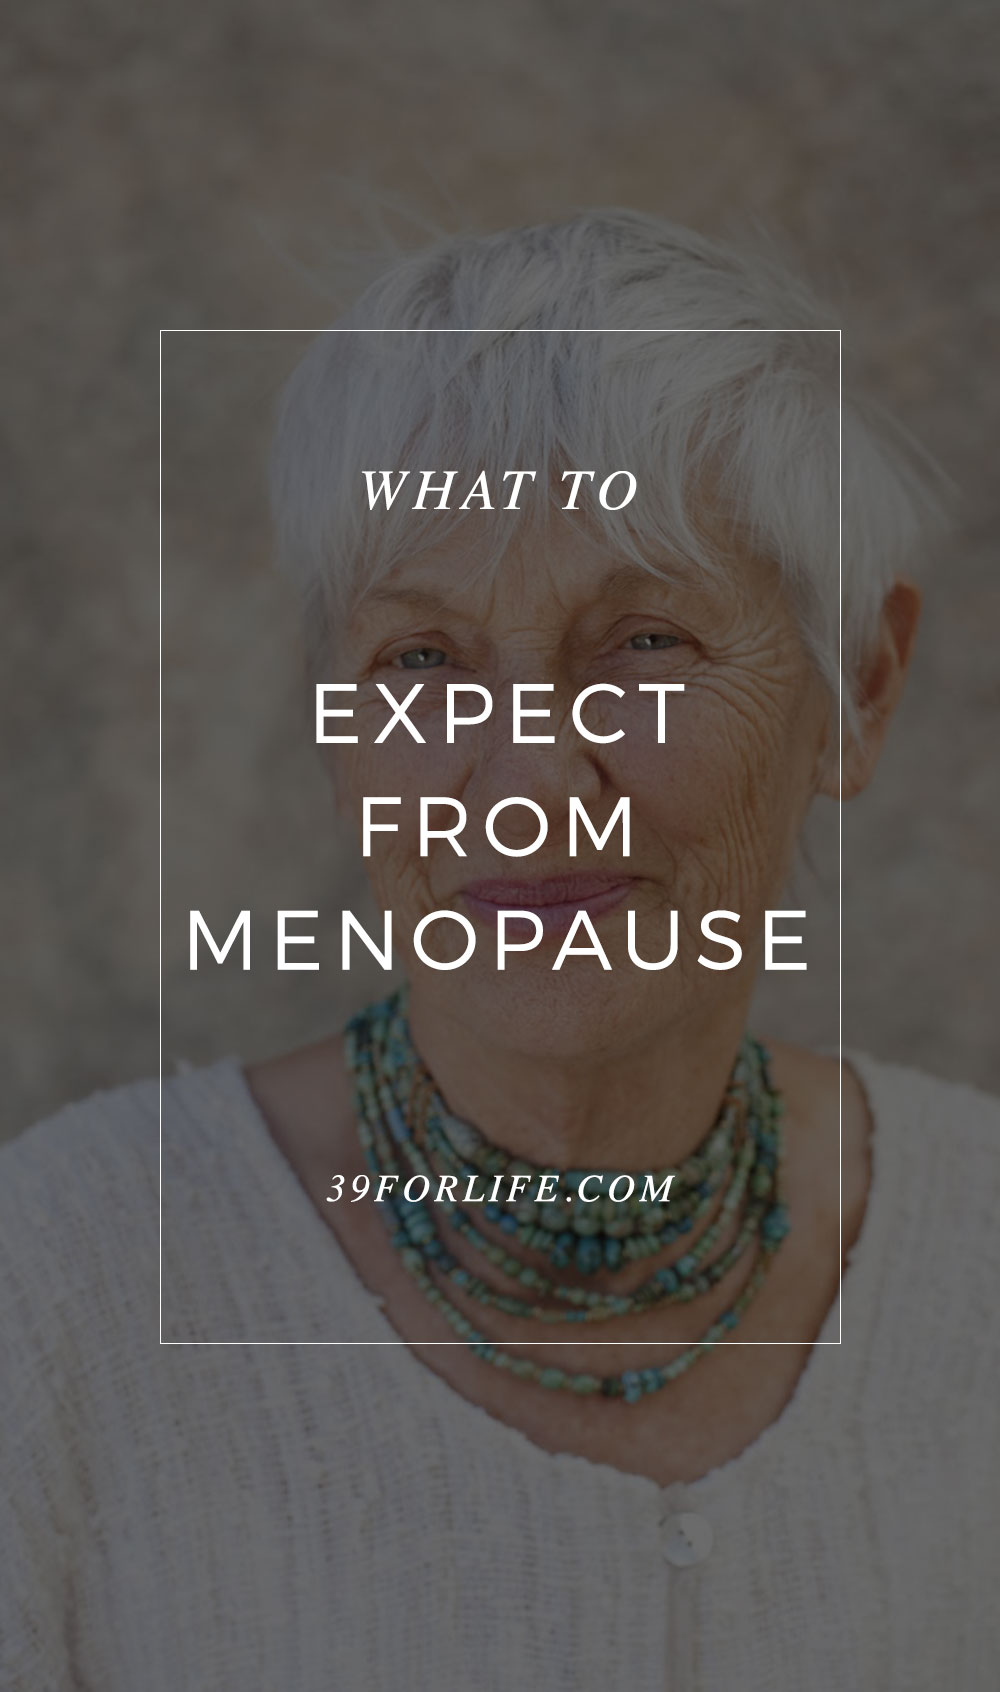 Know the effects of menopause and make it less scary and mysterious with these tips from an OBGYN.